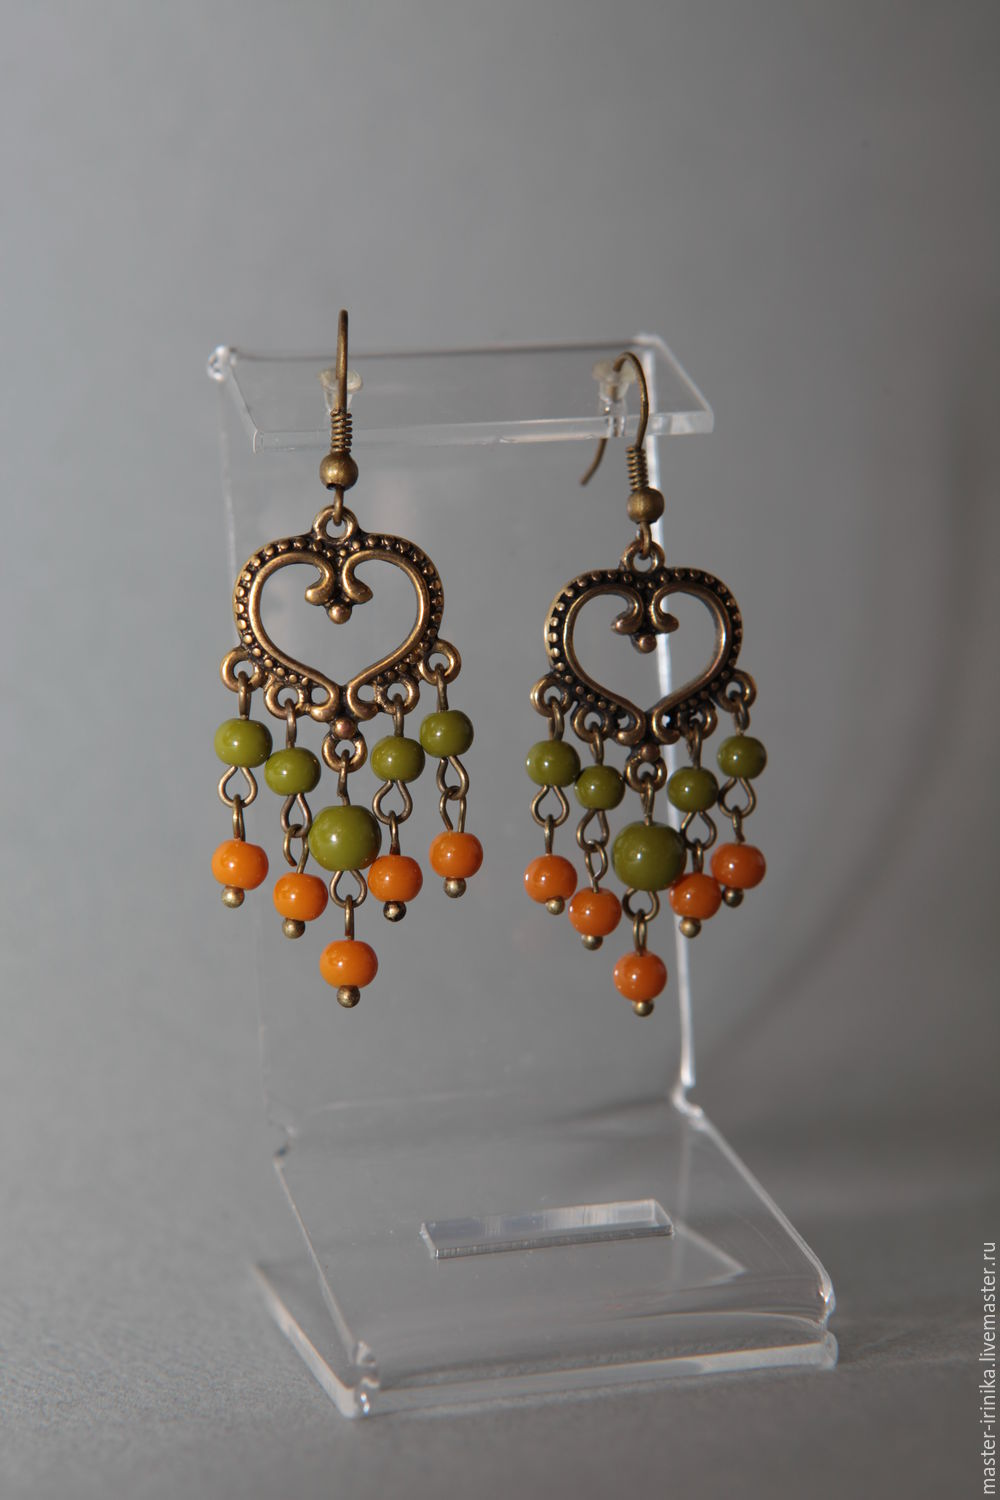 Earrings long Lesnaya Skazka in green and terracotta tones. The image of the fall of the studio images of Irina N IriNika. Jewellery creating an image Photo of the author